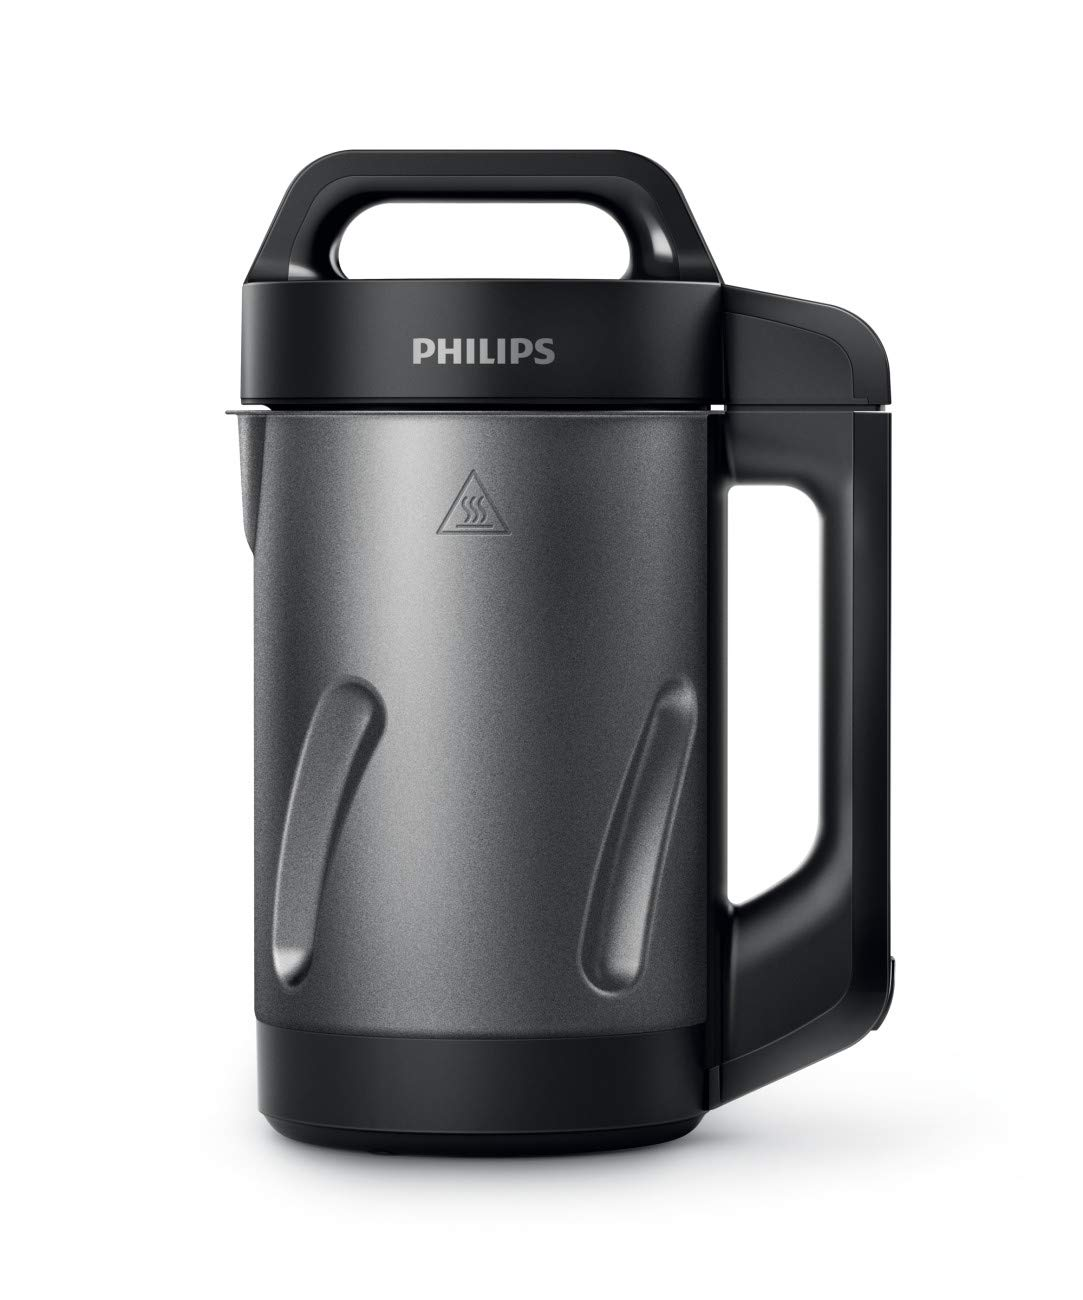 Philips Soup Maker, Makes 2-4 servings, HR2204/70 by Philips Kitchen Appliances